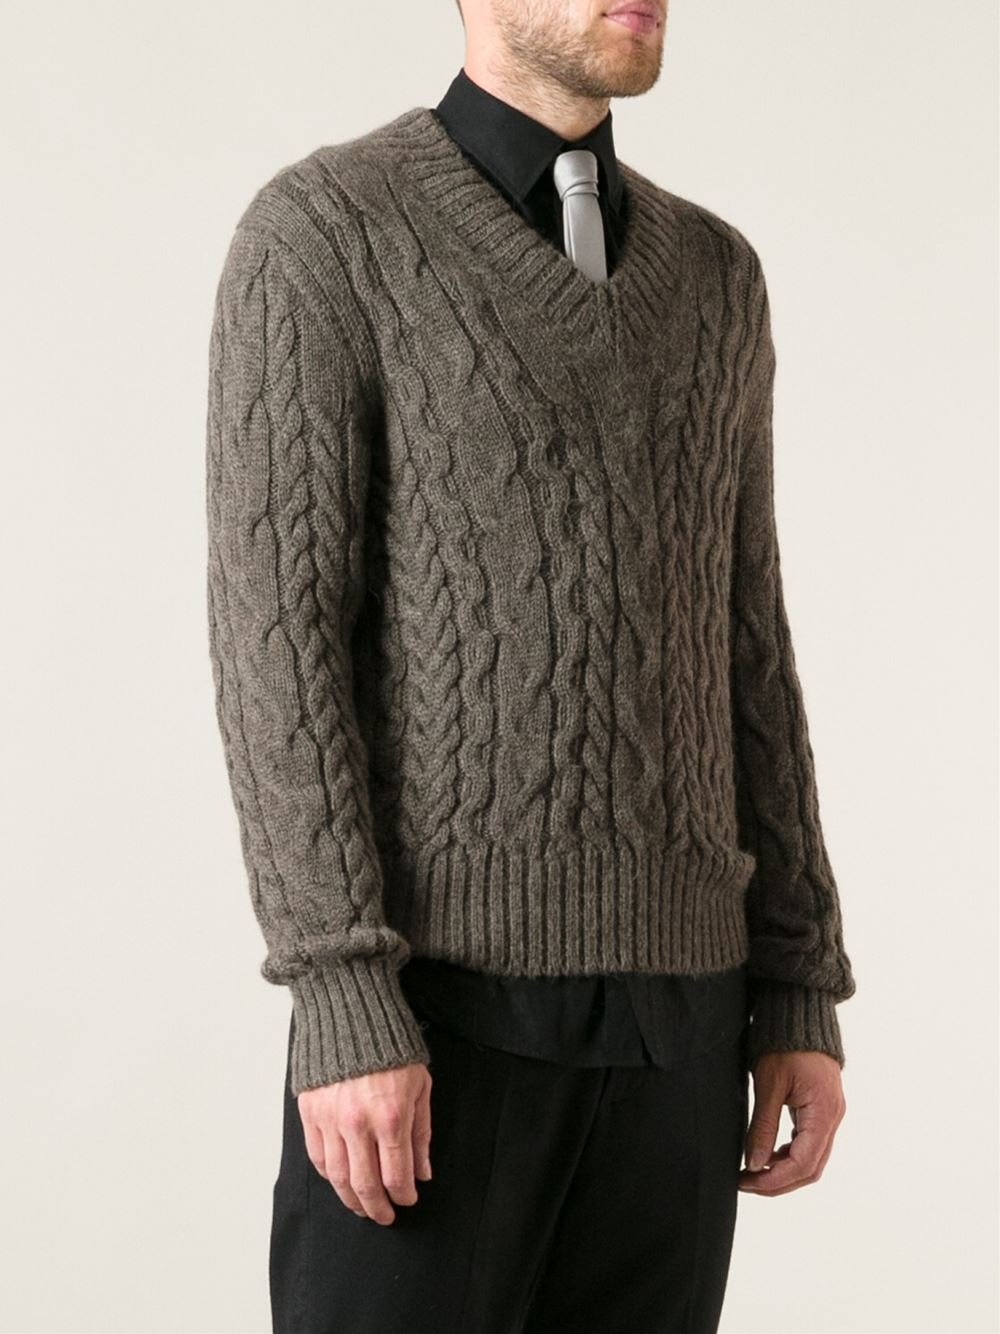 tom ford cable knit sweater in brown for men lyst. Black Bedroom Furniture Sets. Home Design Ideas